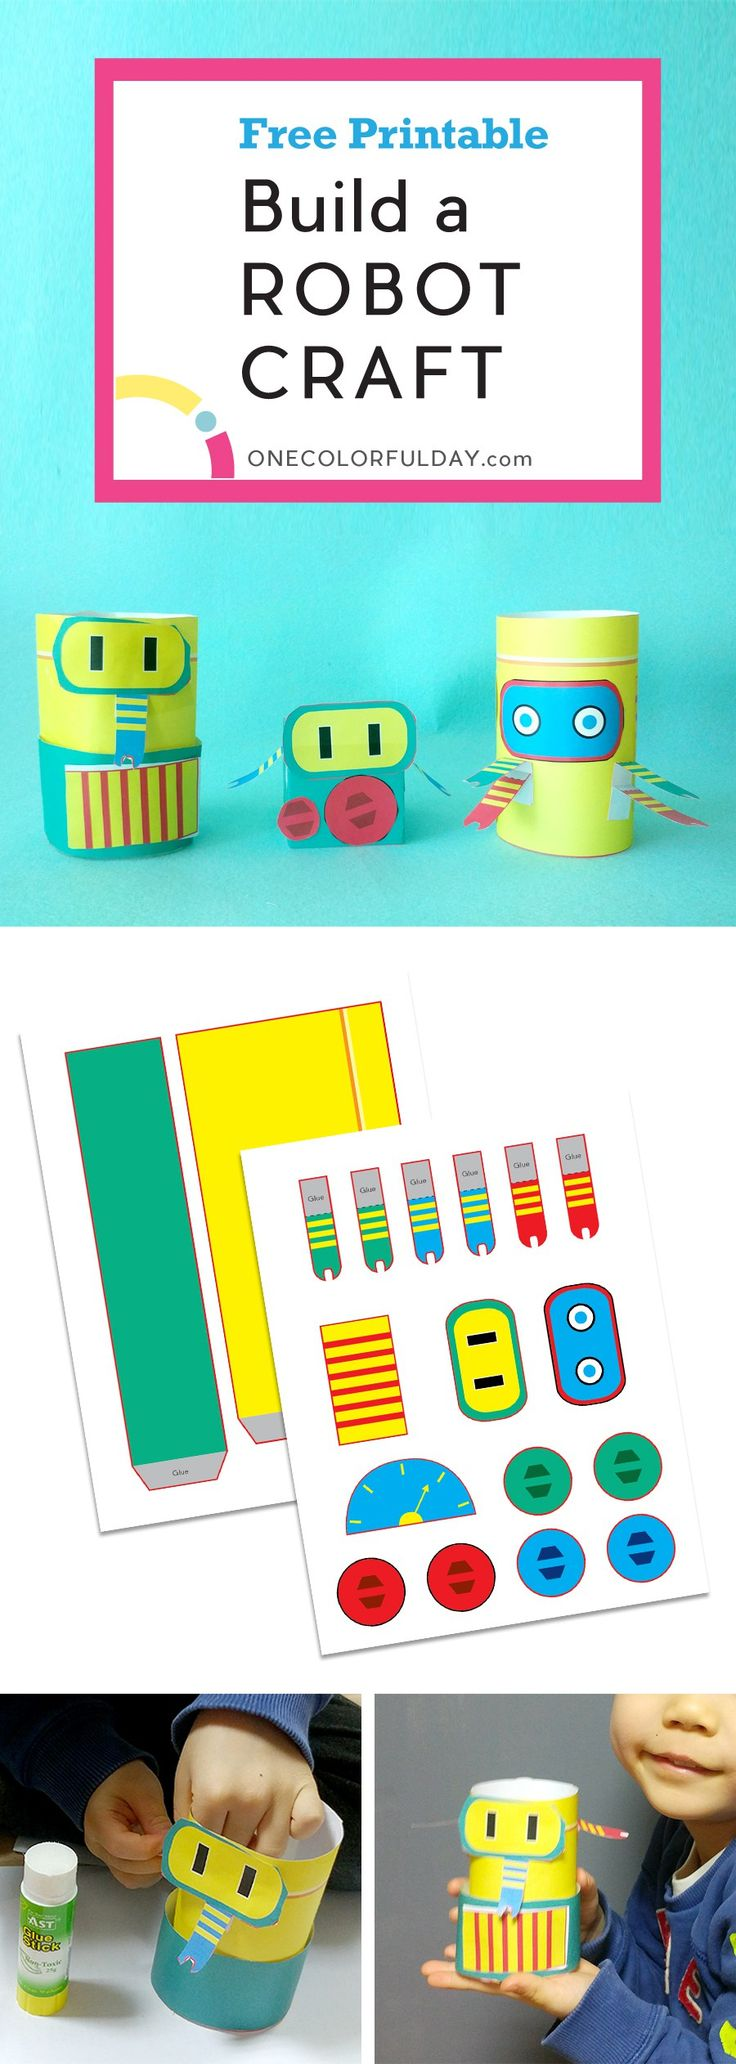 826 best Printables images on Pinterest | School, Activities and ...